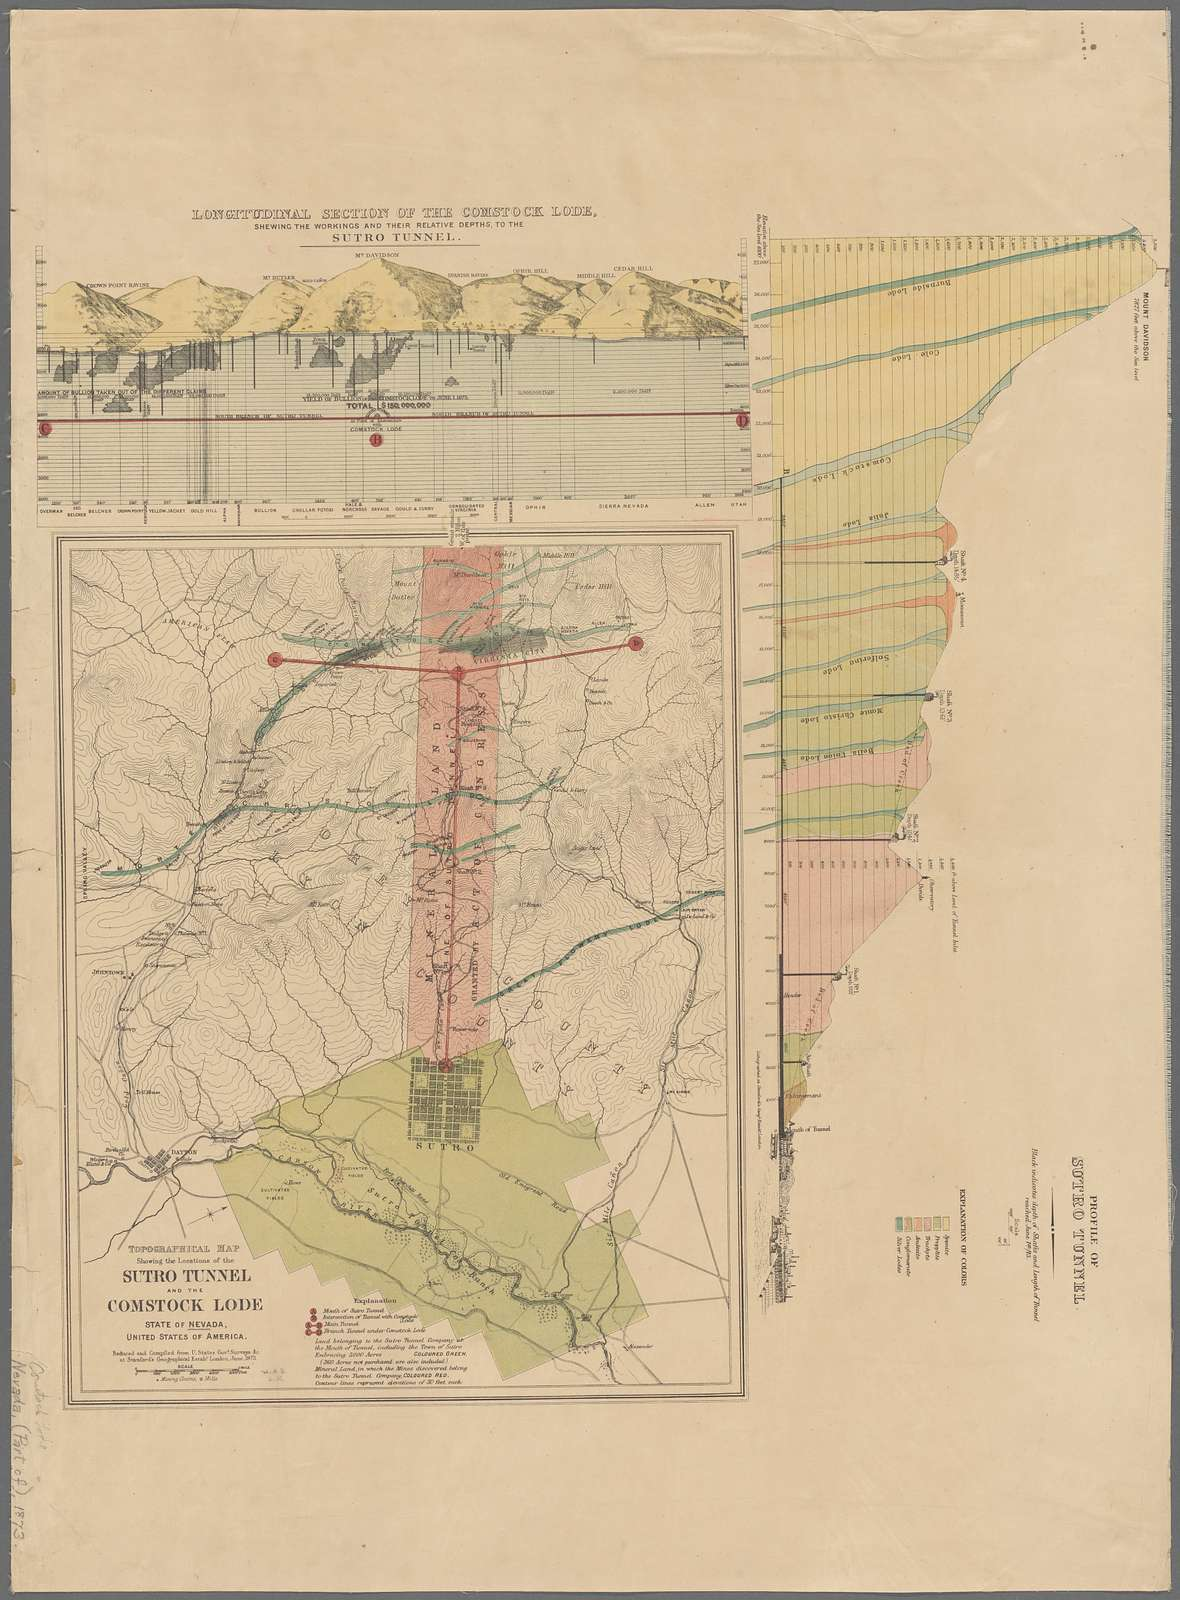 Topographical map showing the locations of the Sutro Tunnel : and the Comstock Lode, State of Nevada, United States of America, reduced and compiled from U. States govt. surveys &c. at Stanford's Geographical Estabt.